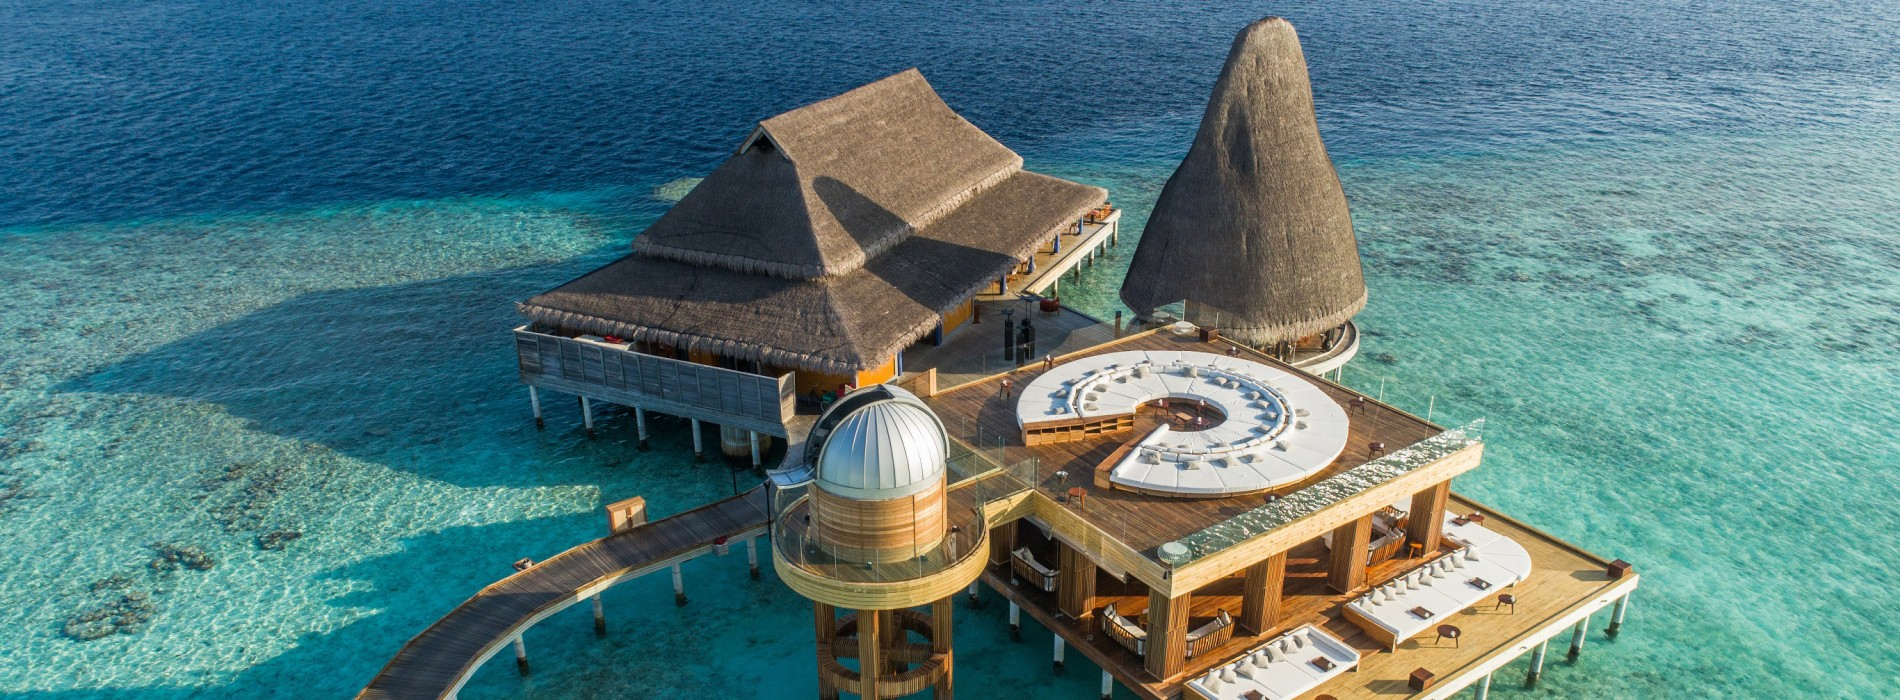 Anantara Hotels, Resorts & Spas launches new website